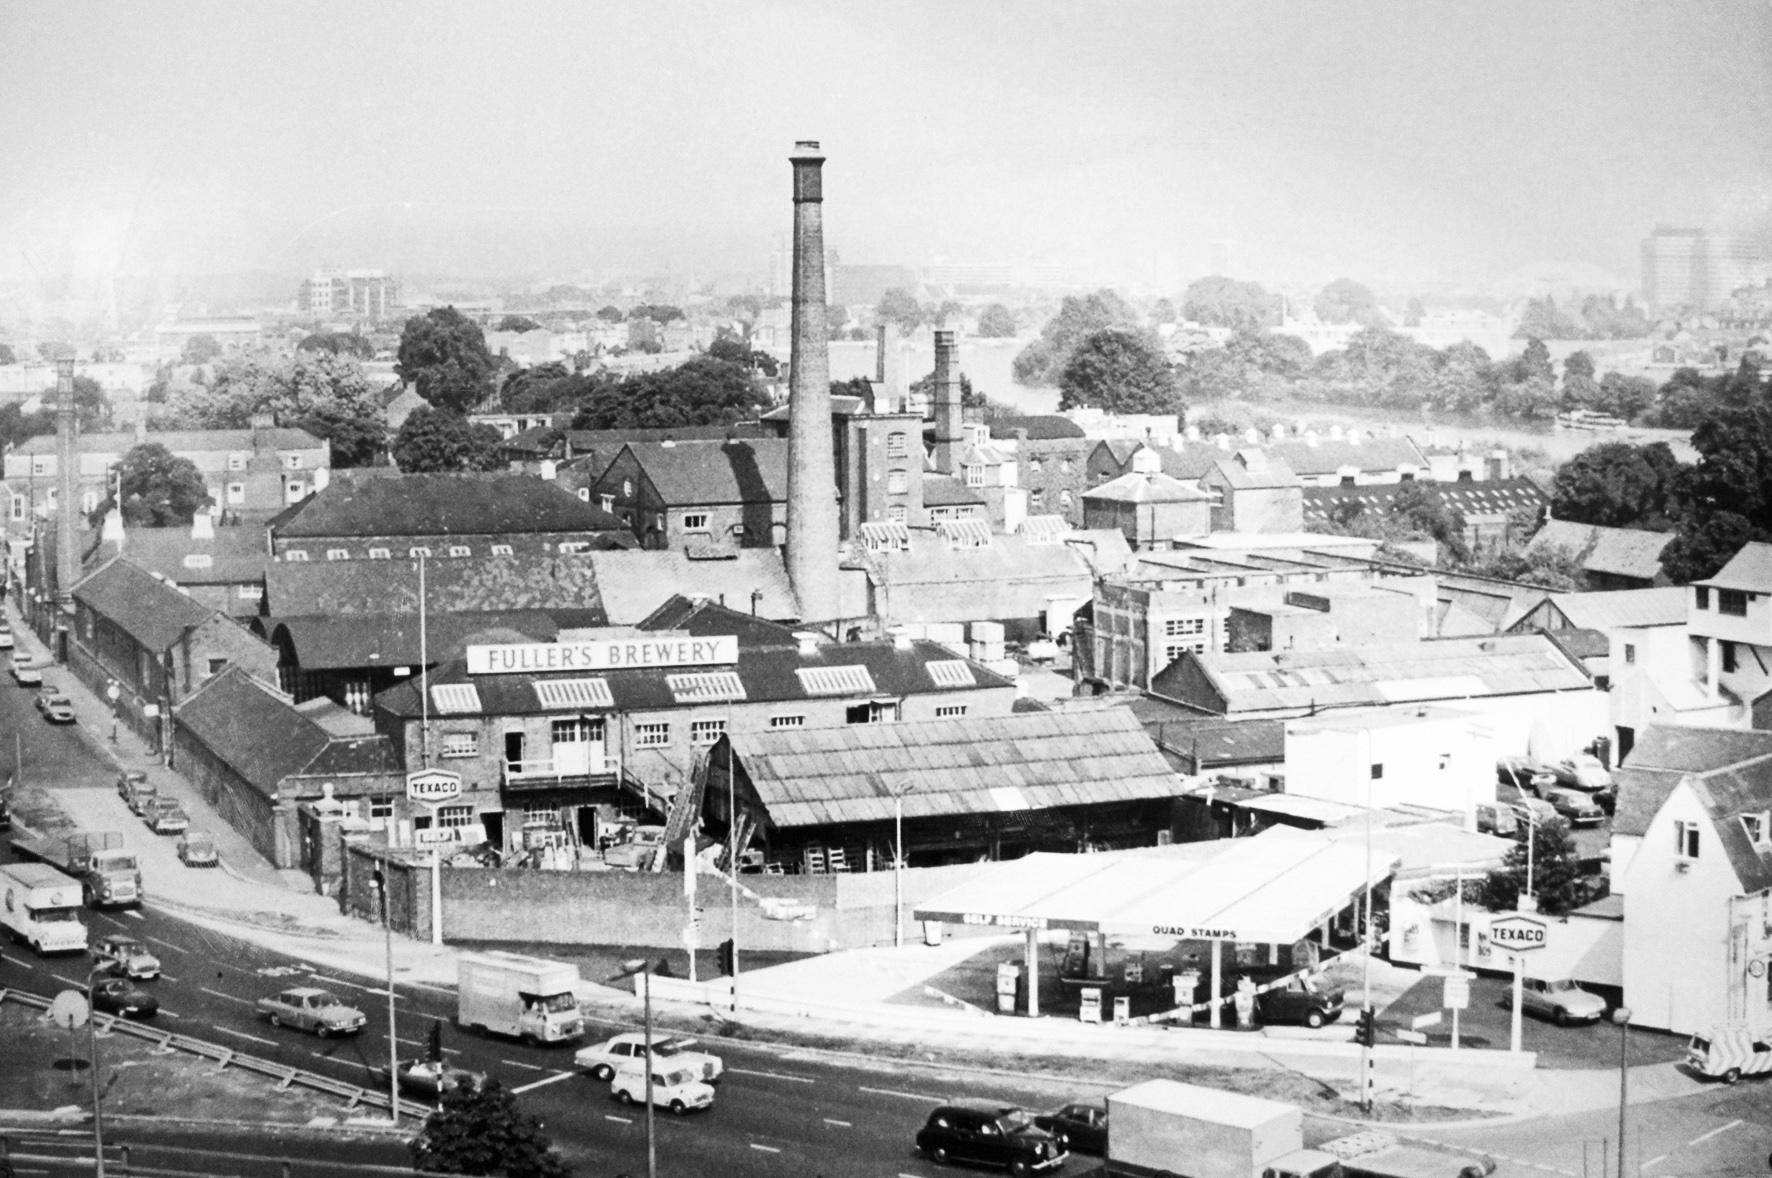 Fuller's brewery, Chiswick in the late 1960s, with the brick chimney still in place. The land for the petrol station on the corner was sold by Fuller's to the fuel company, and later had to be bought back a considerable expense as the brewery expanded